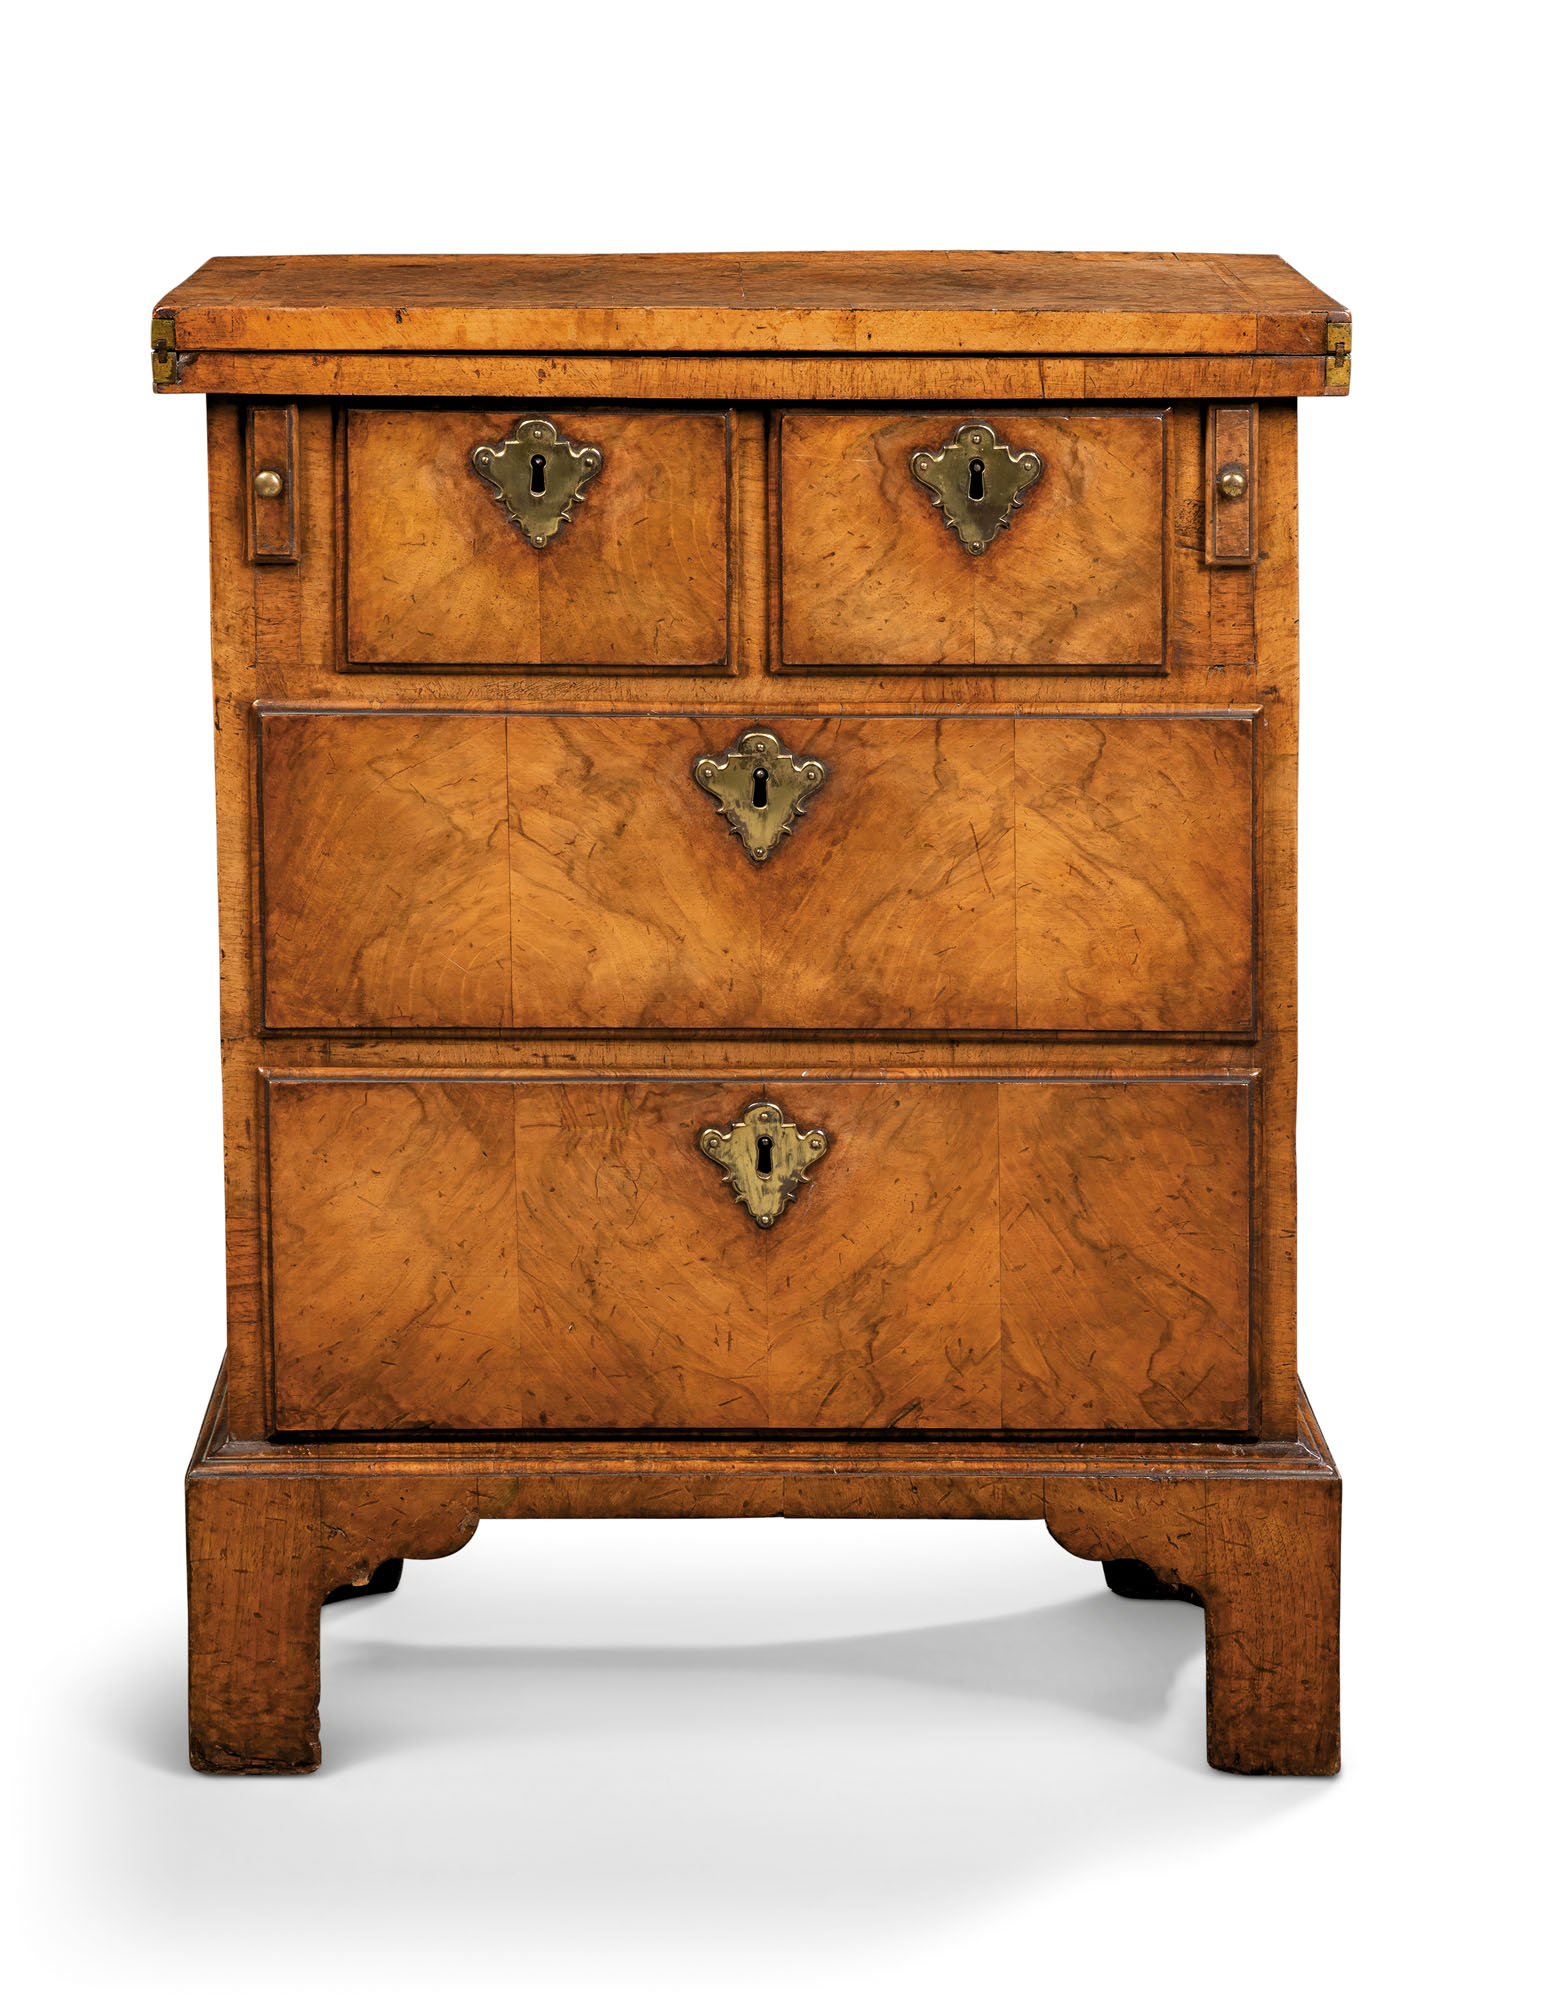 A GEORGE I WALNUT SMALL BACHELOR'S CHEST